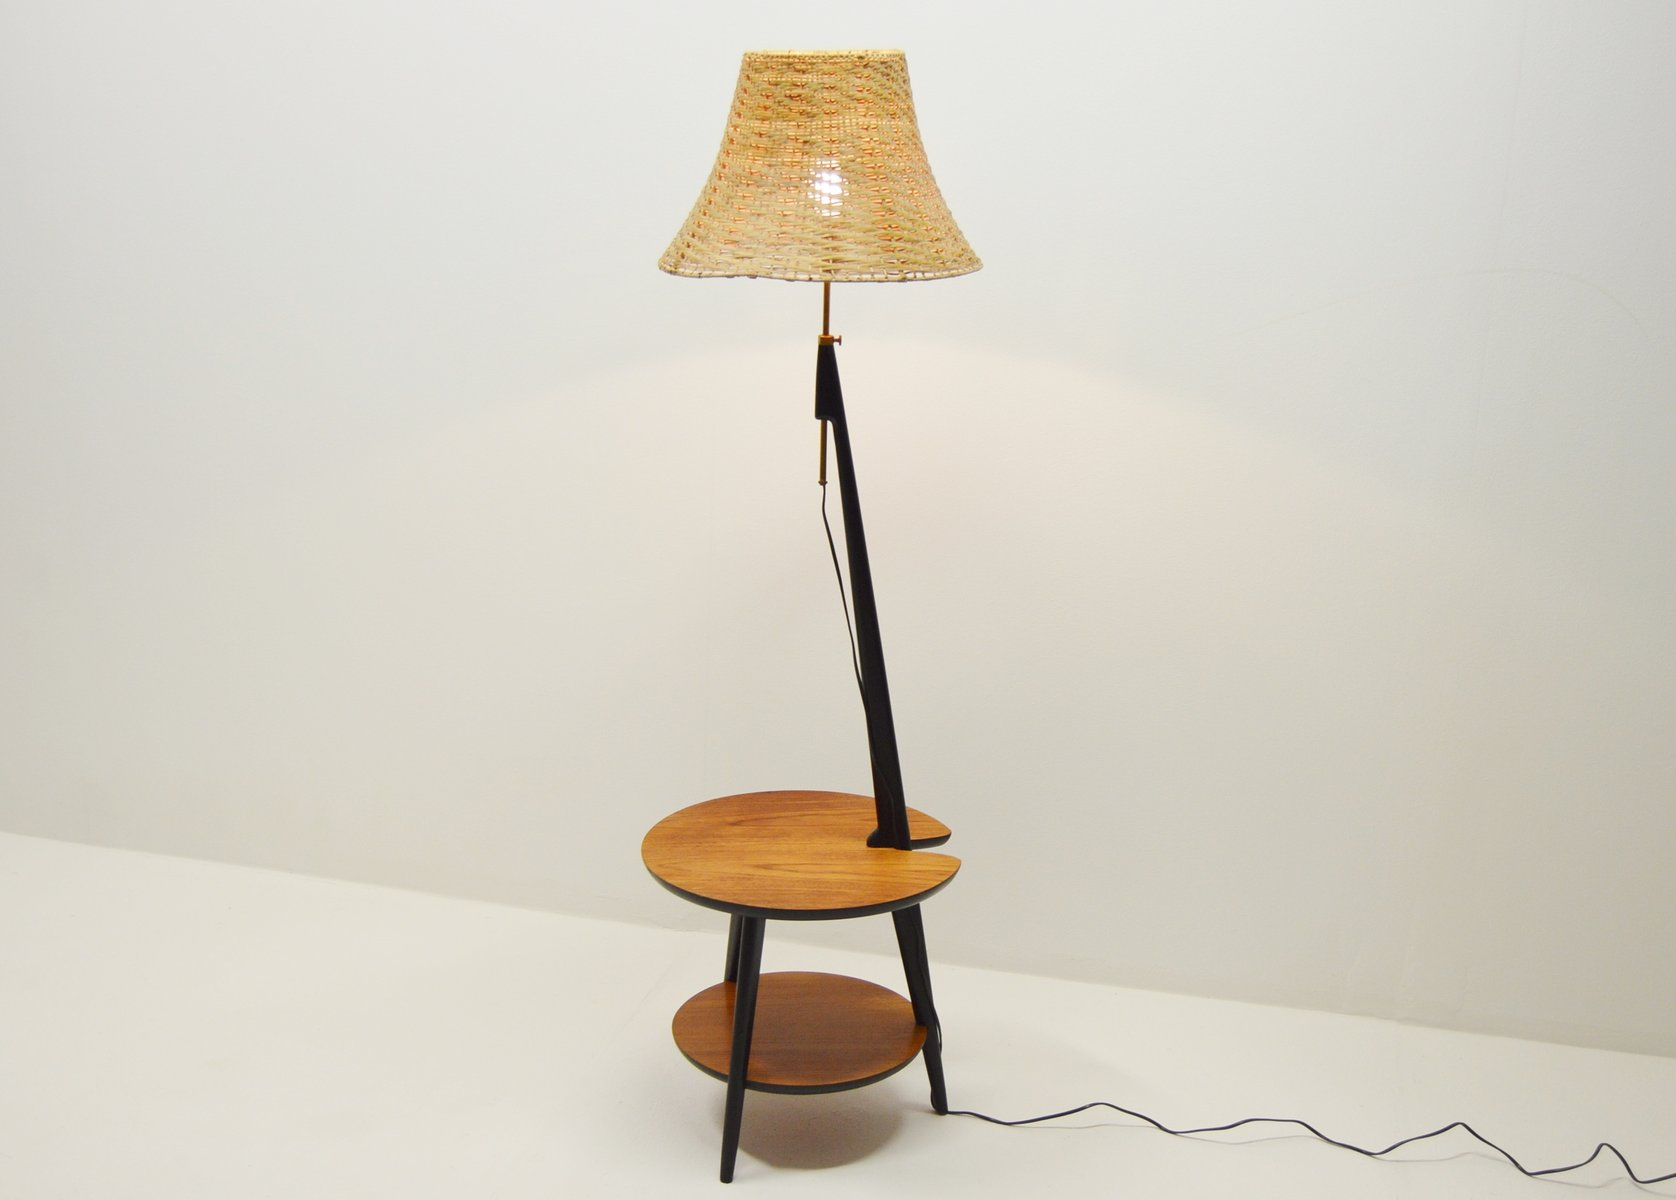 Teak Floor Lamp With Integrated Side Table, 1960s For Sale